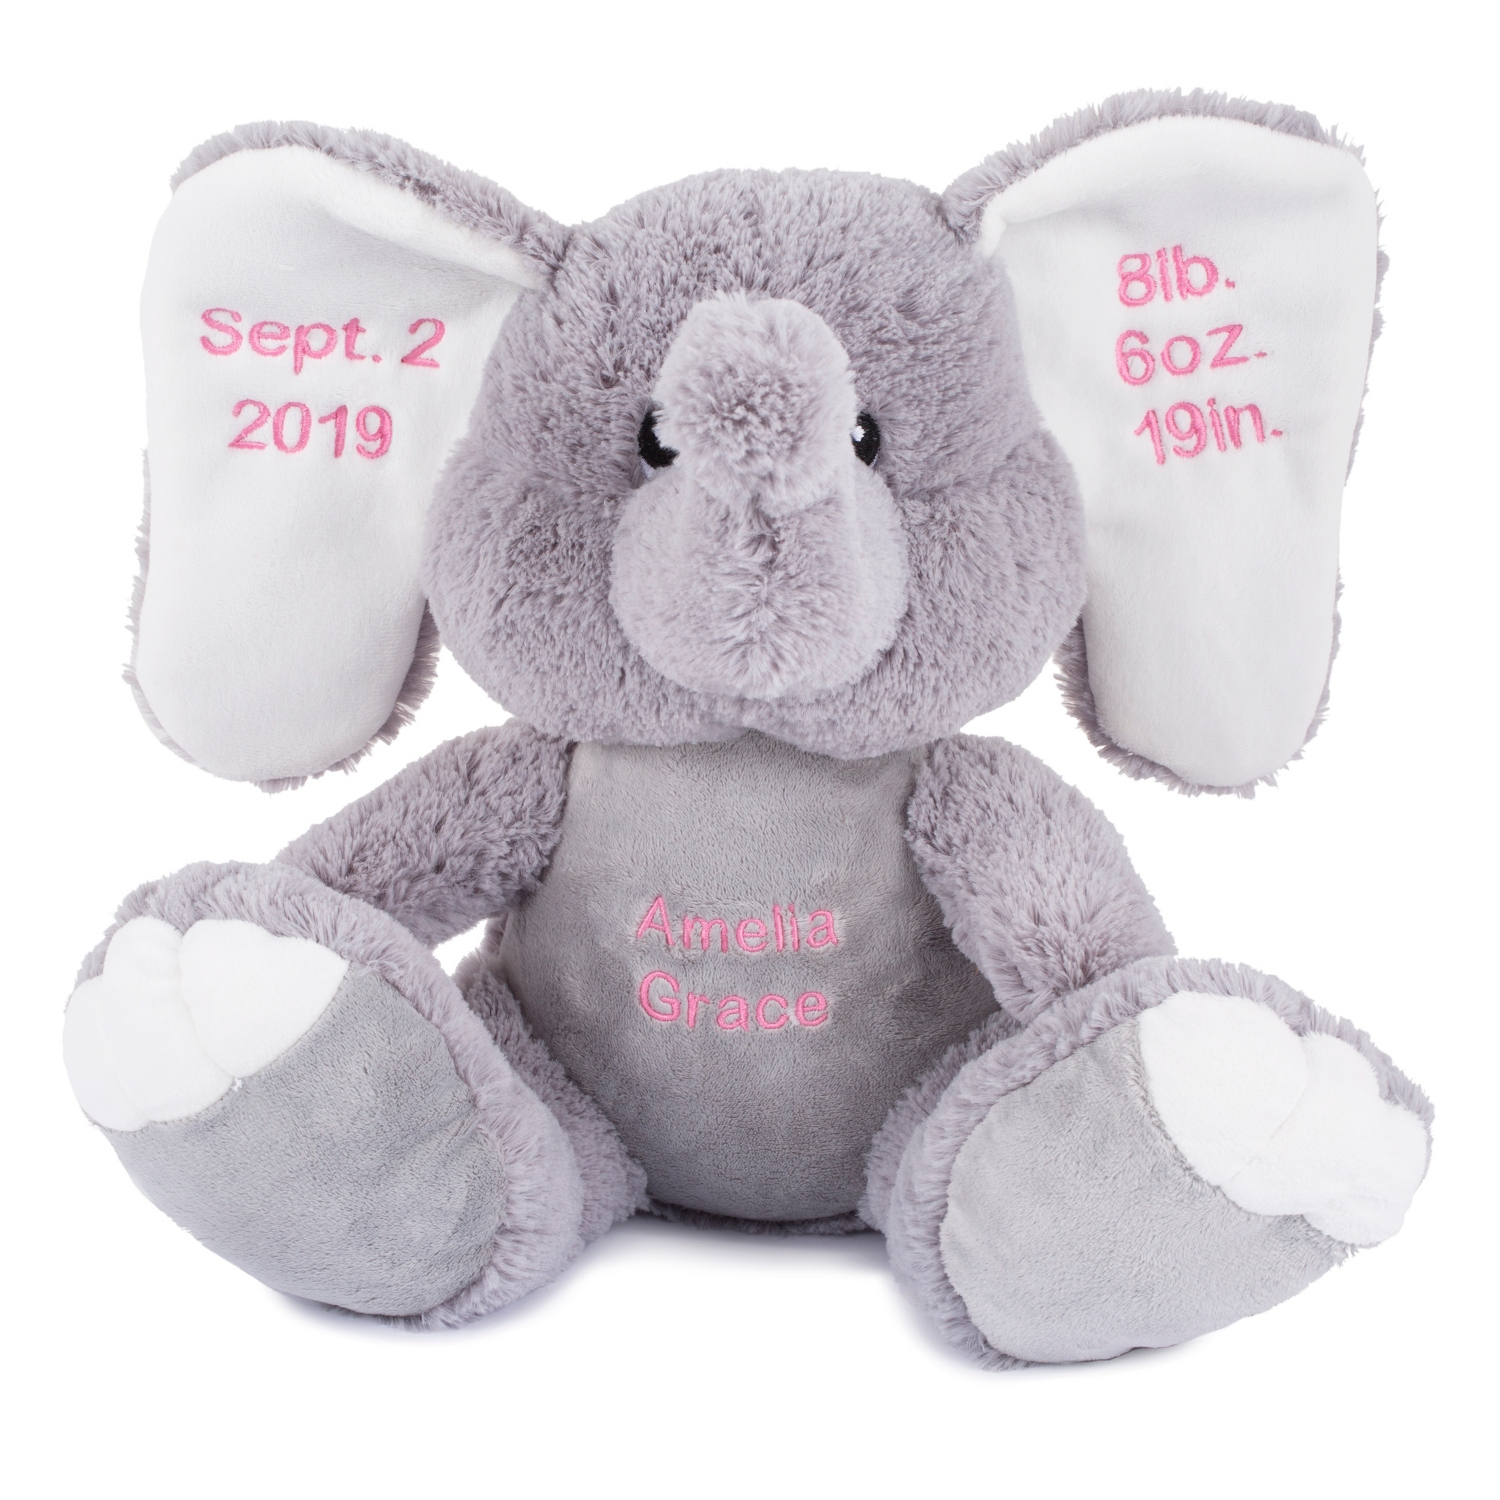 Personalized stuffed animals at things remembered plush elephant plush elephant negle Image collections